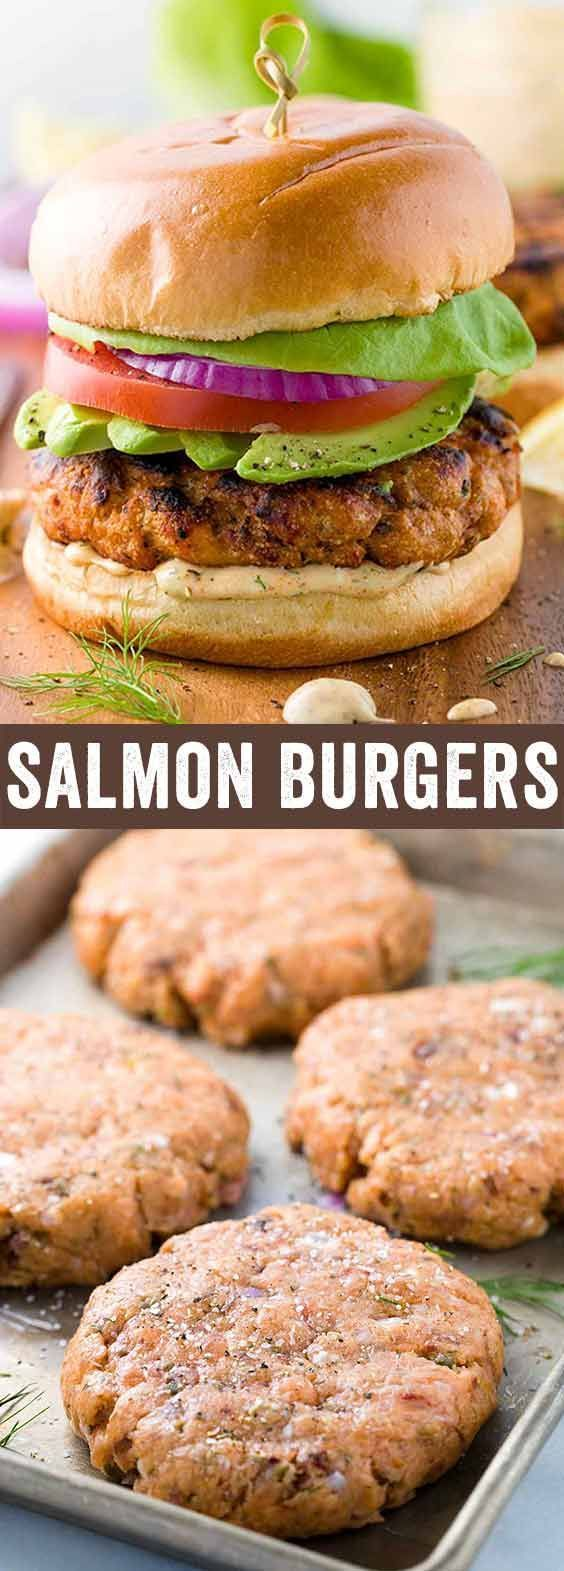 Salmon burgers with lemon dill sauce takes the seafood sandwich to the next level. Healthy protein grilled to perfection and topped with lettuce, tomato, onions, and avocado. via @foodiegavin